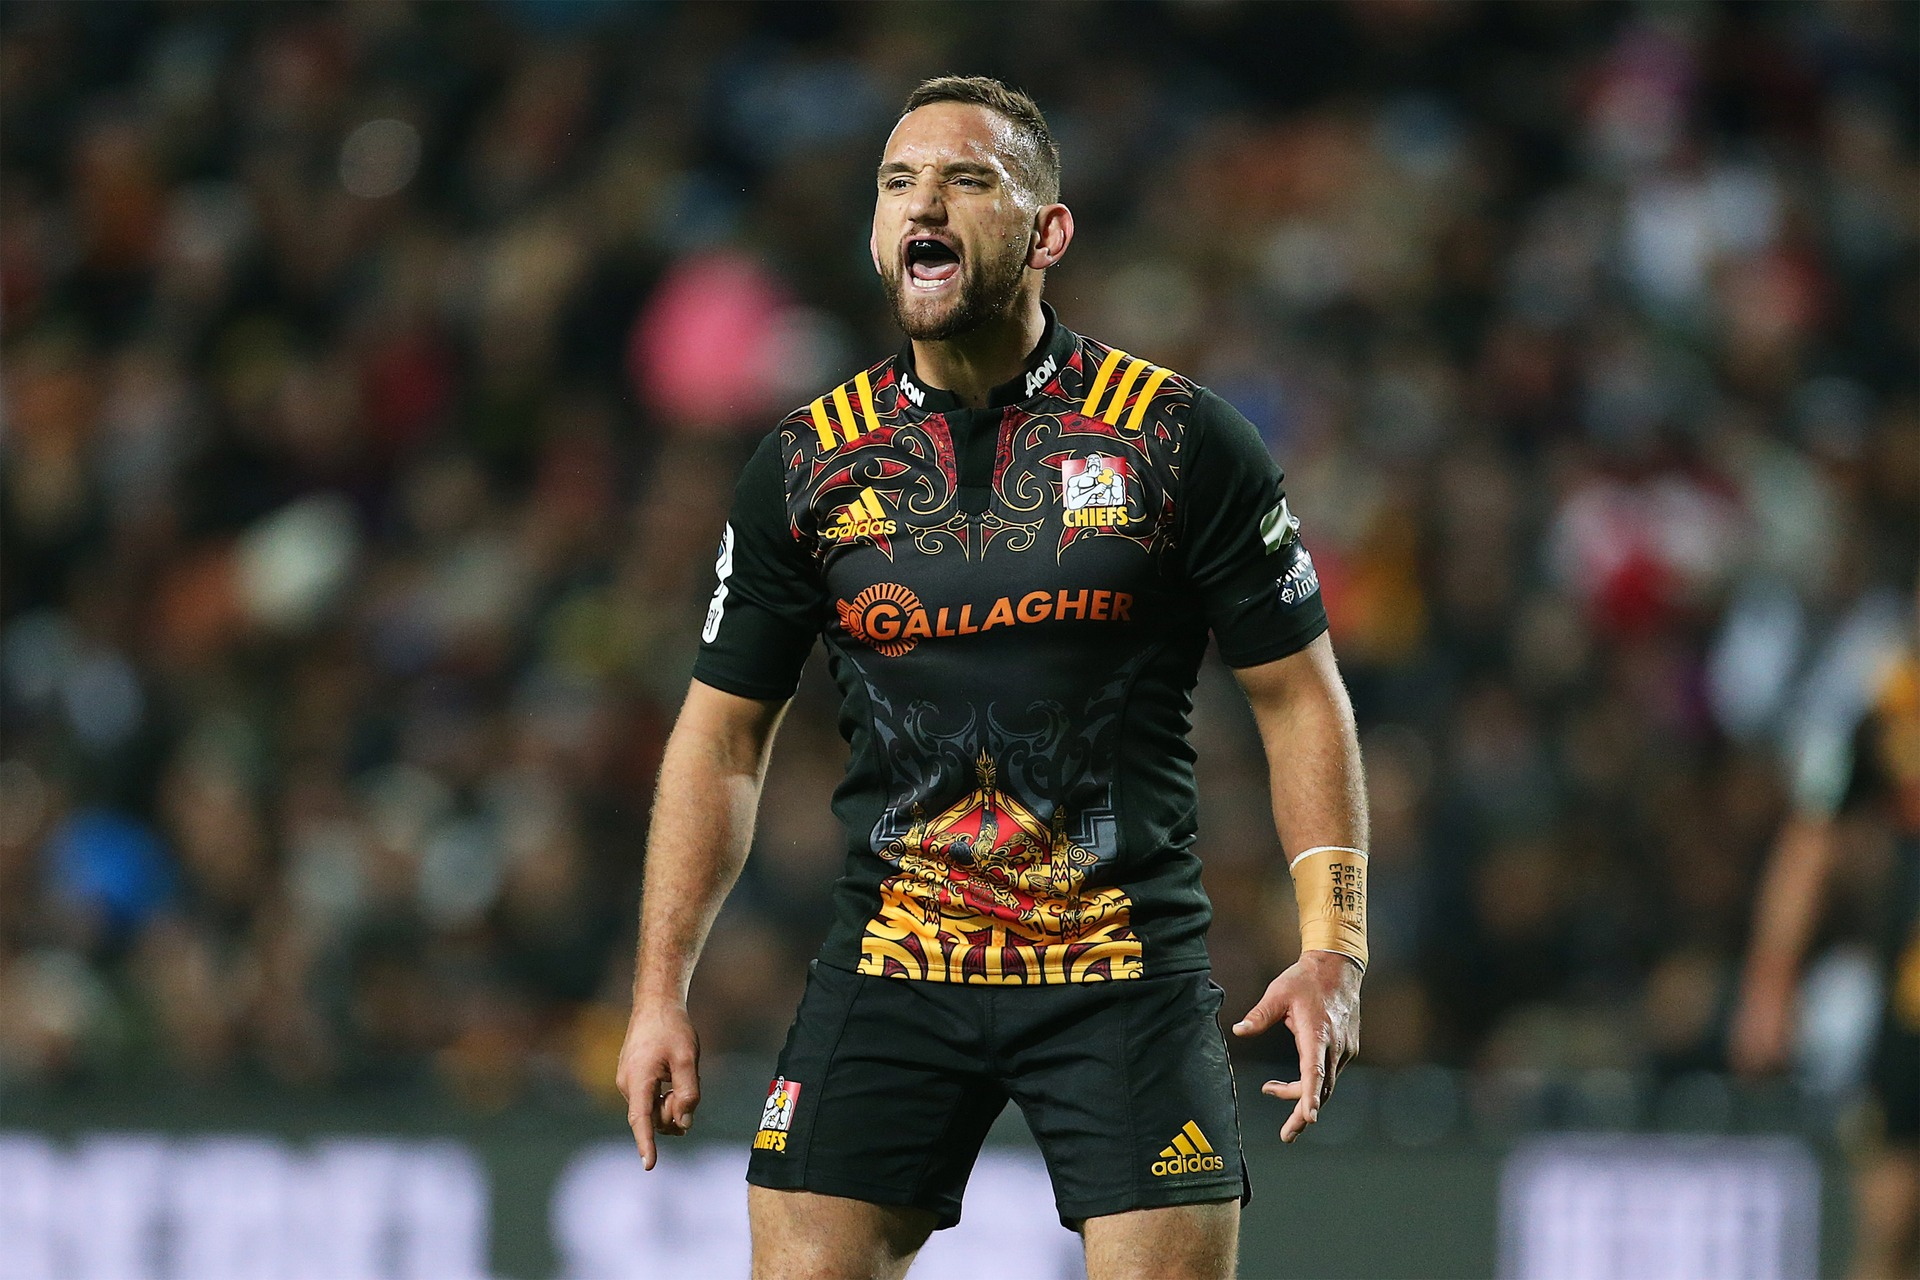 Rugby: Aaron Cruden returns to Chiefs for 2020 Super Rugby season - NZ  Herald